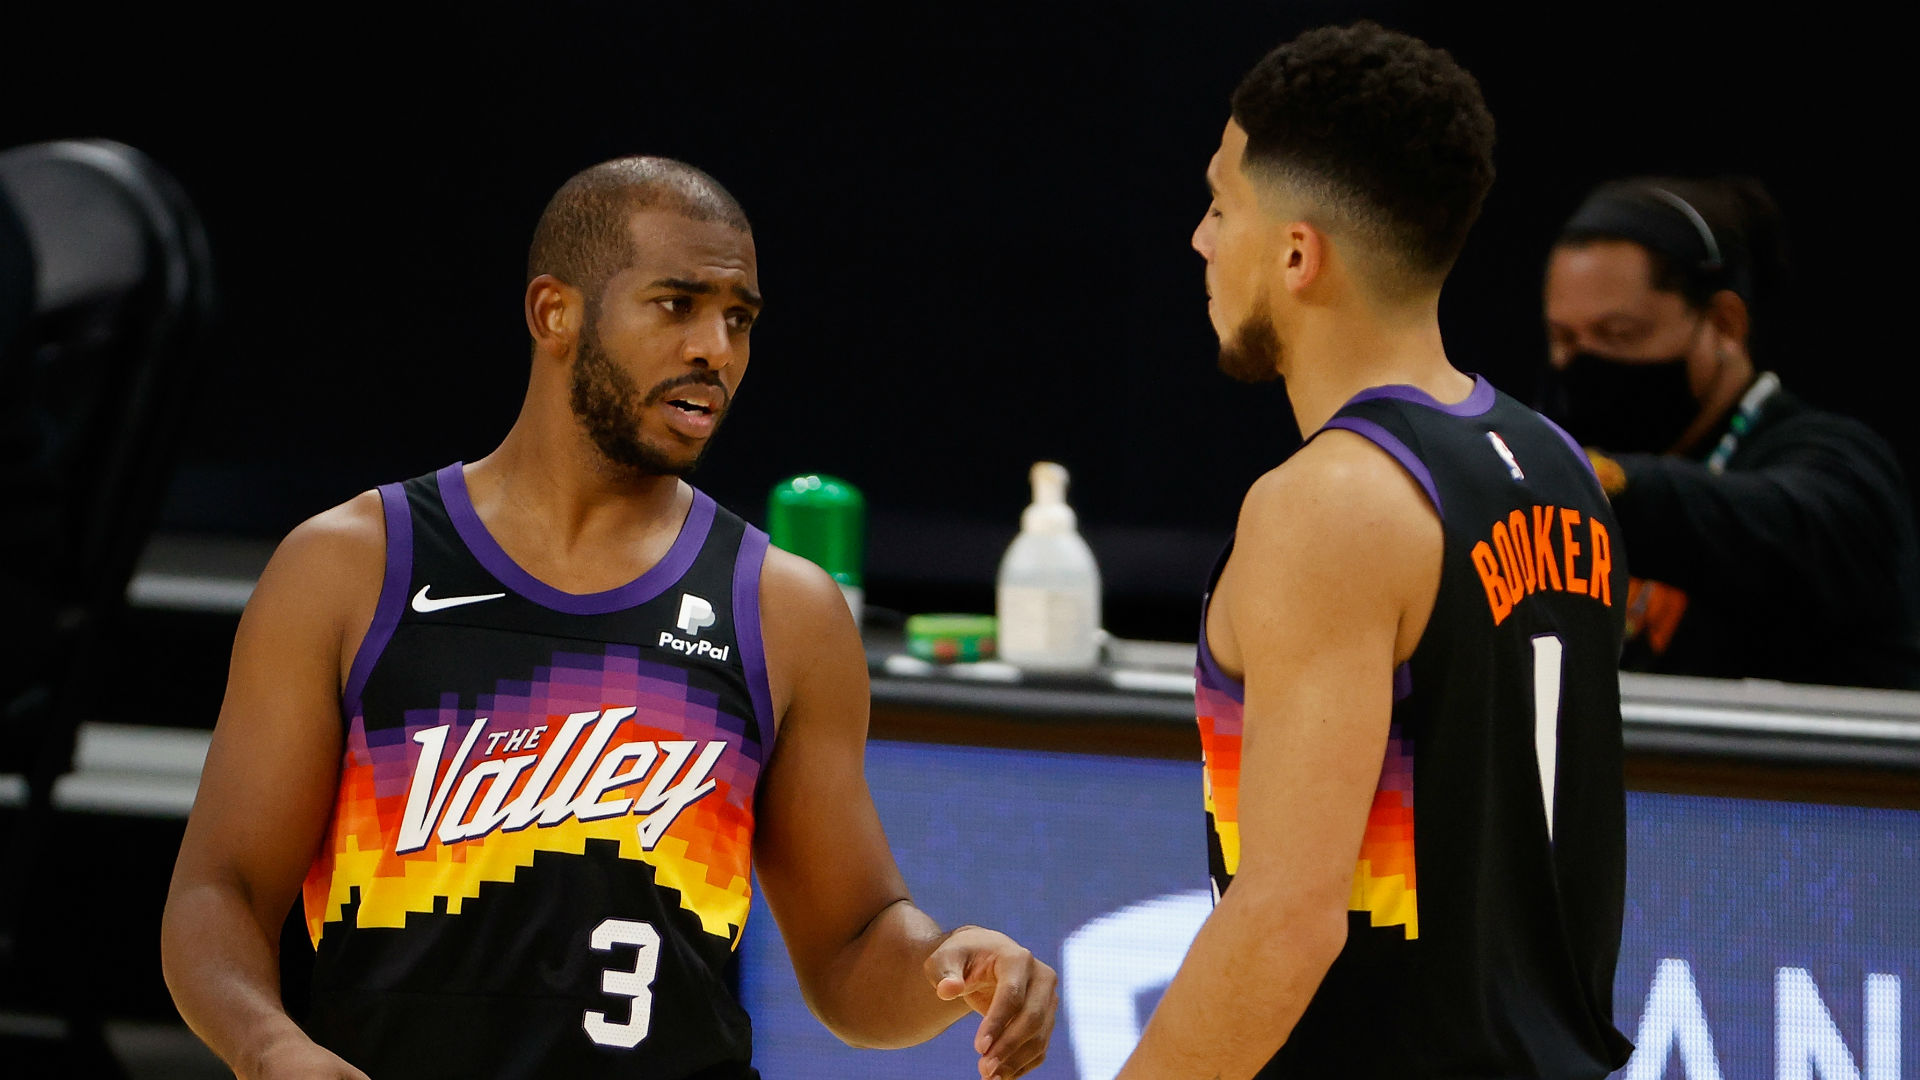 """Chris Paul Speaks Out On Devin Booker's All-Star Snub: """"We Go As Booker Goes And We Know That"""""""